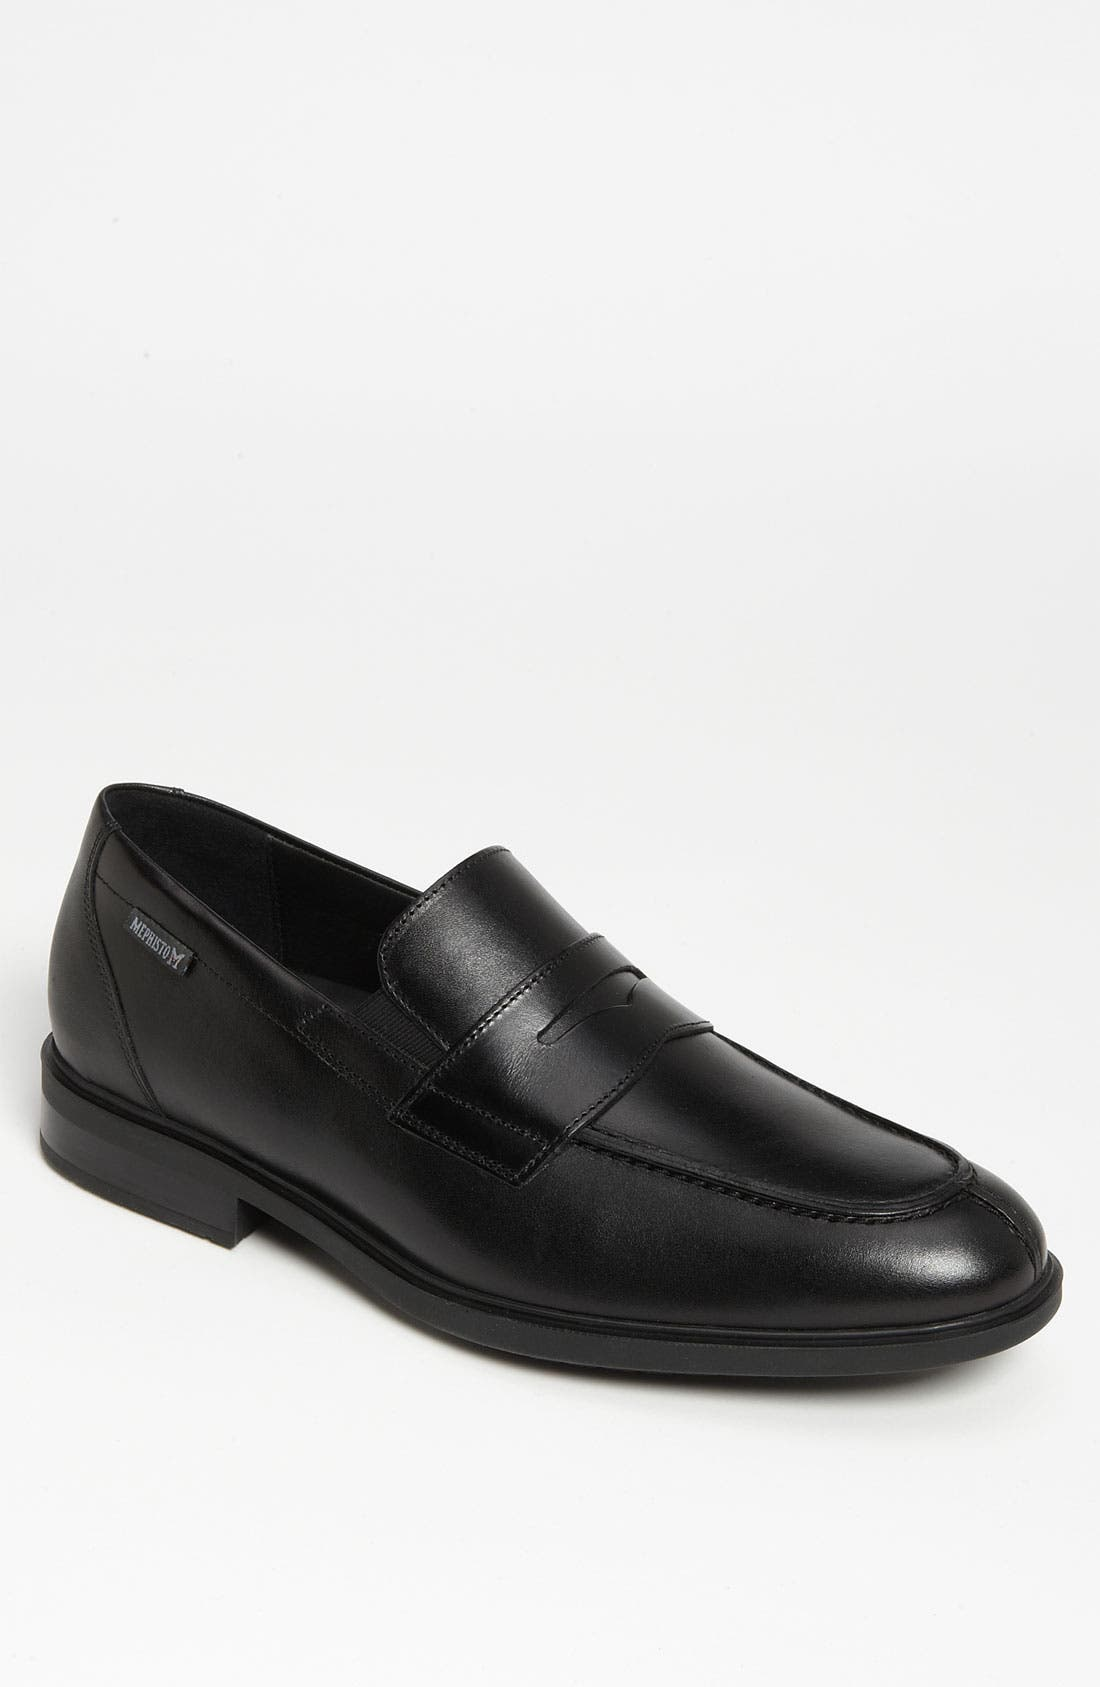 Alternate Image 1 Selected - Mephisto Fortino Loafer (Online Only)